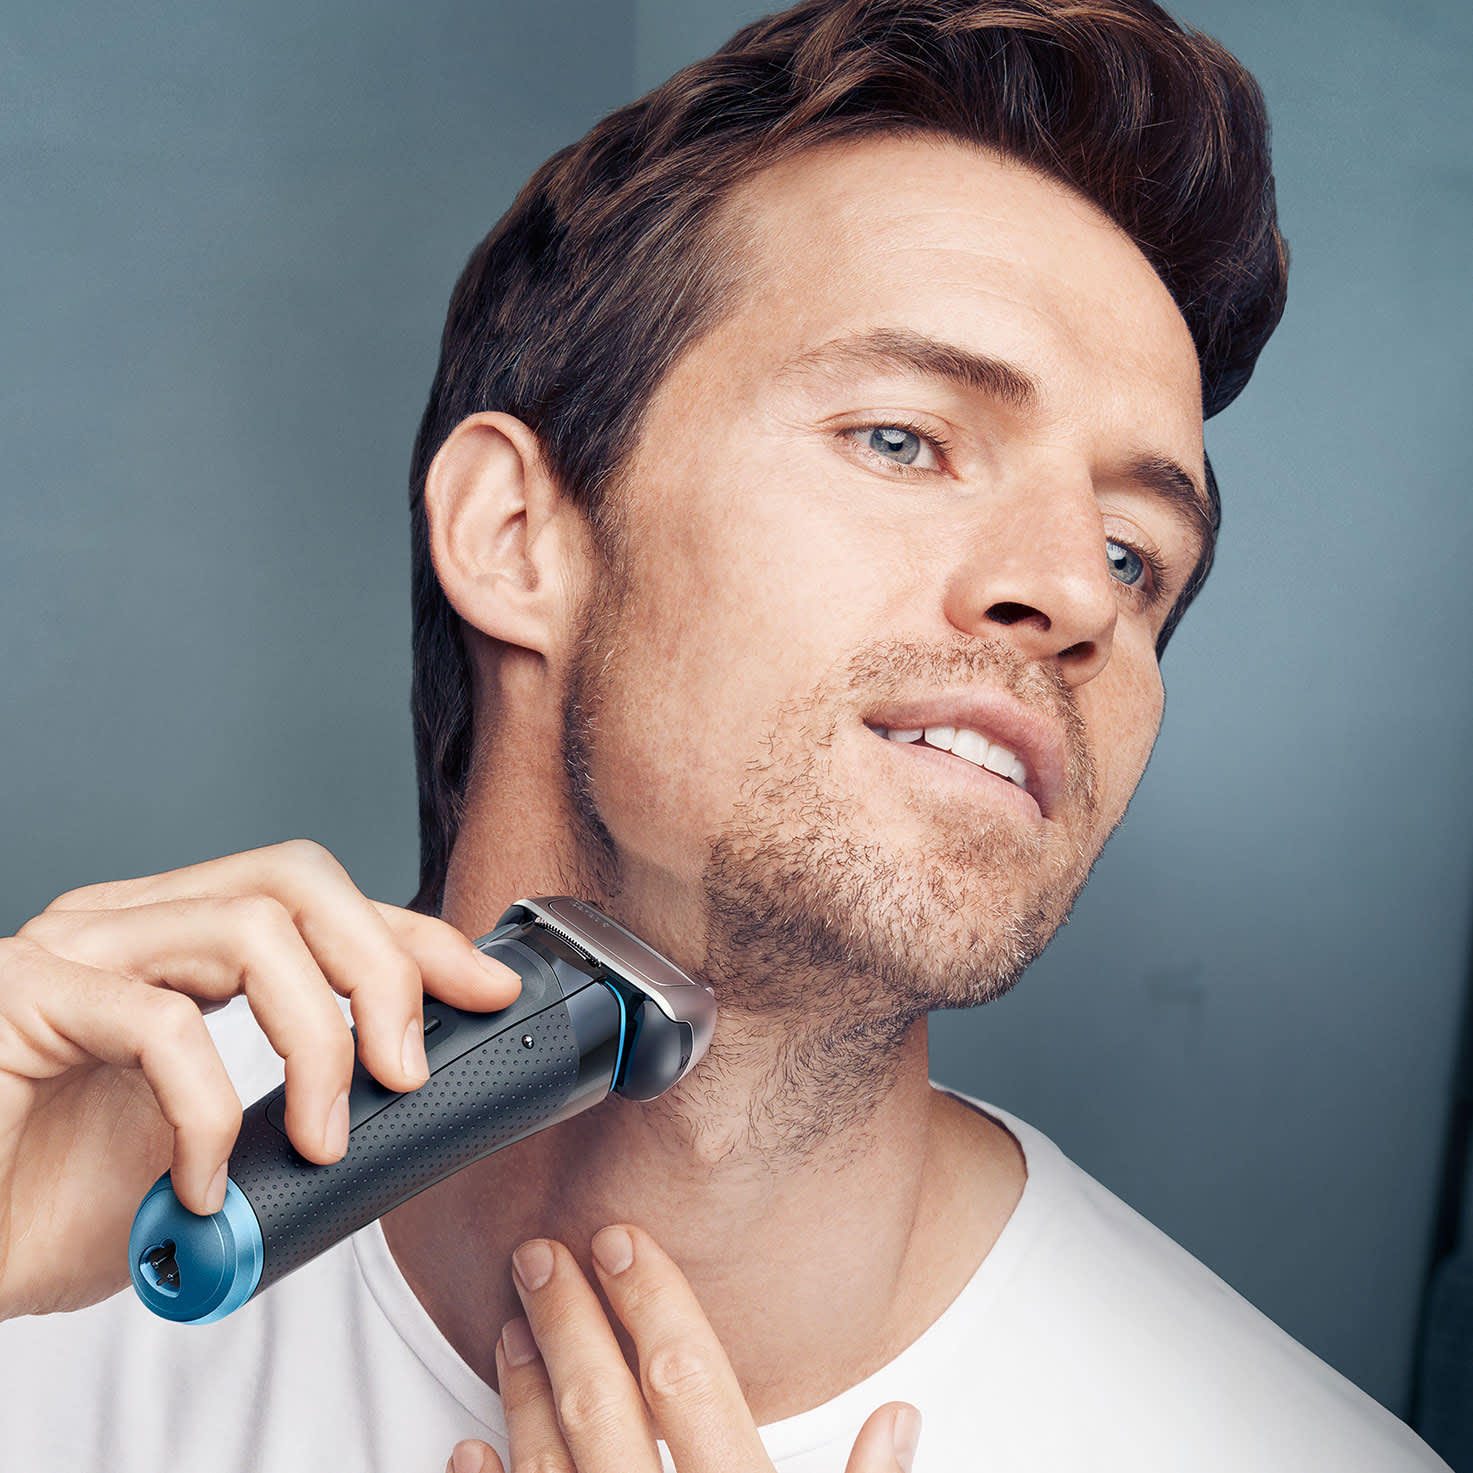 Series 8 8385cc shaver - in use